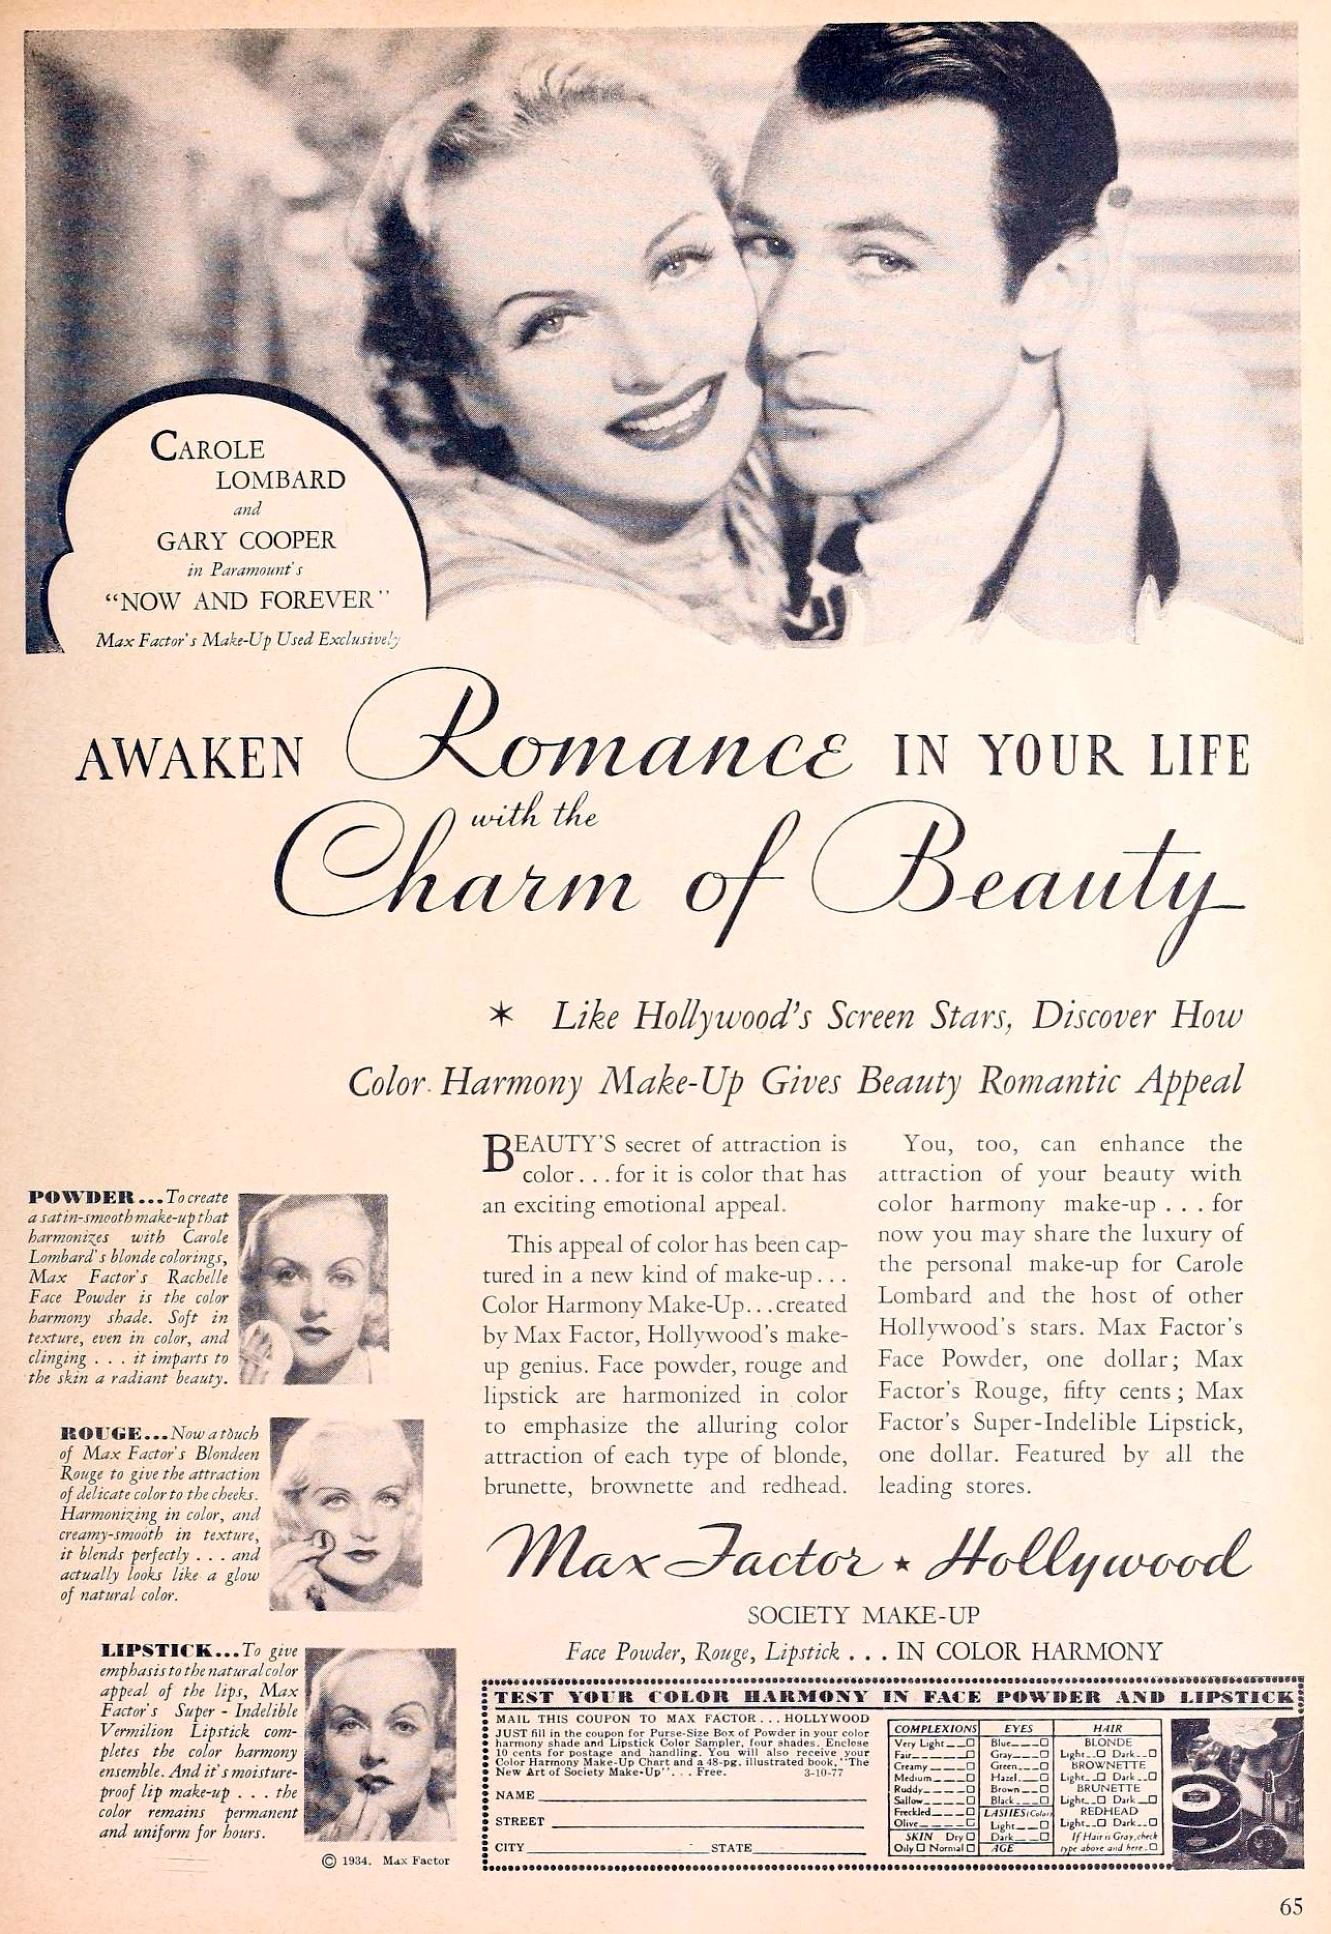 carole lombard movie classic october 1934bb